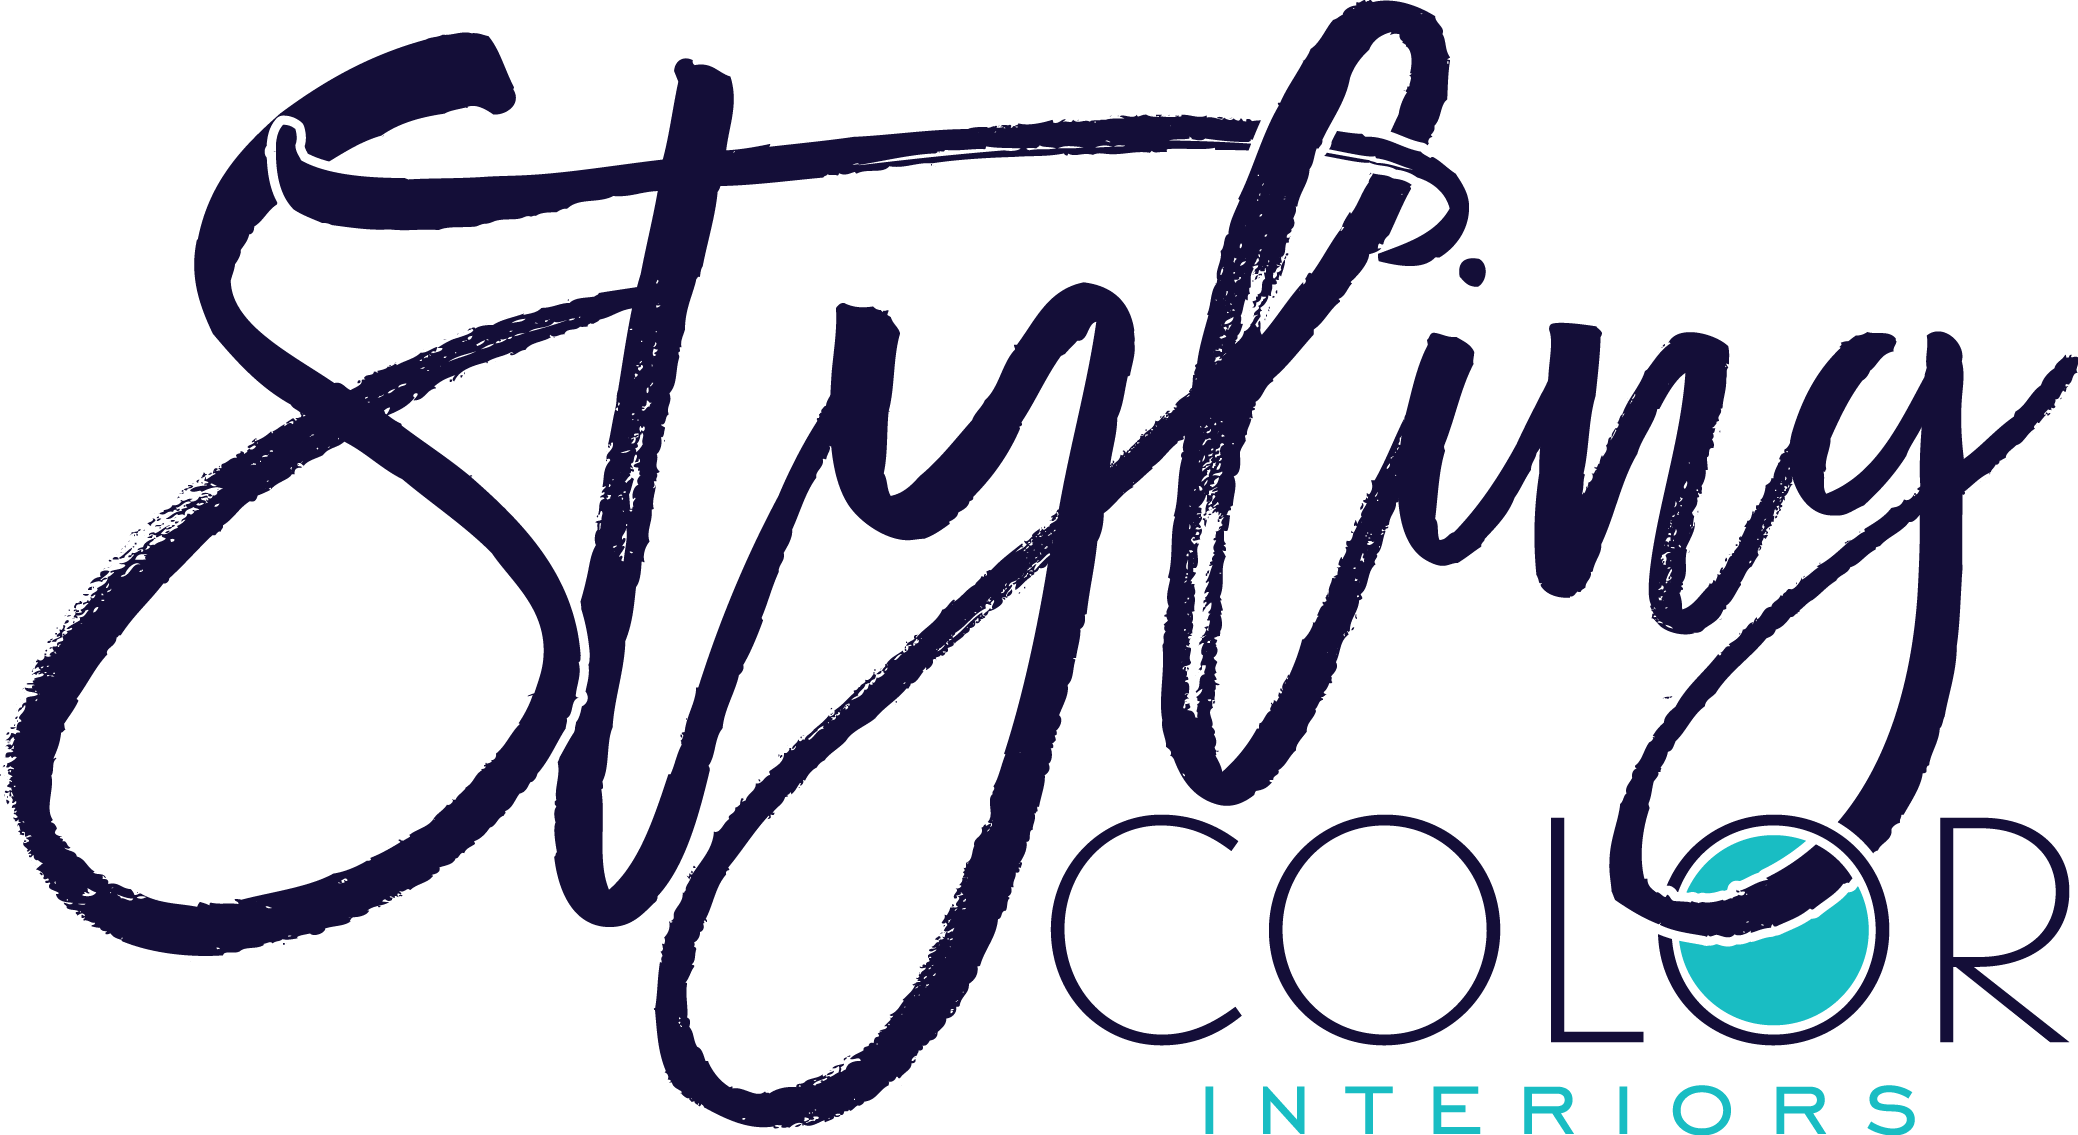 Create a classic modern logo with a flair for a color consulting interior design business